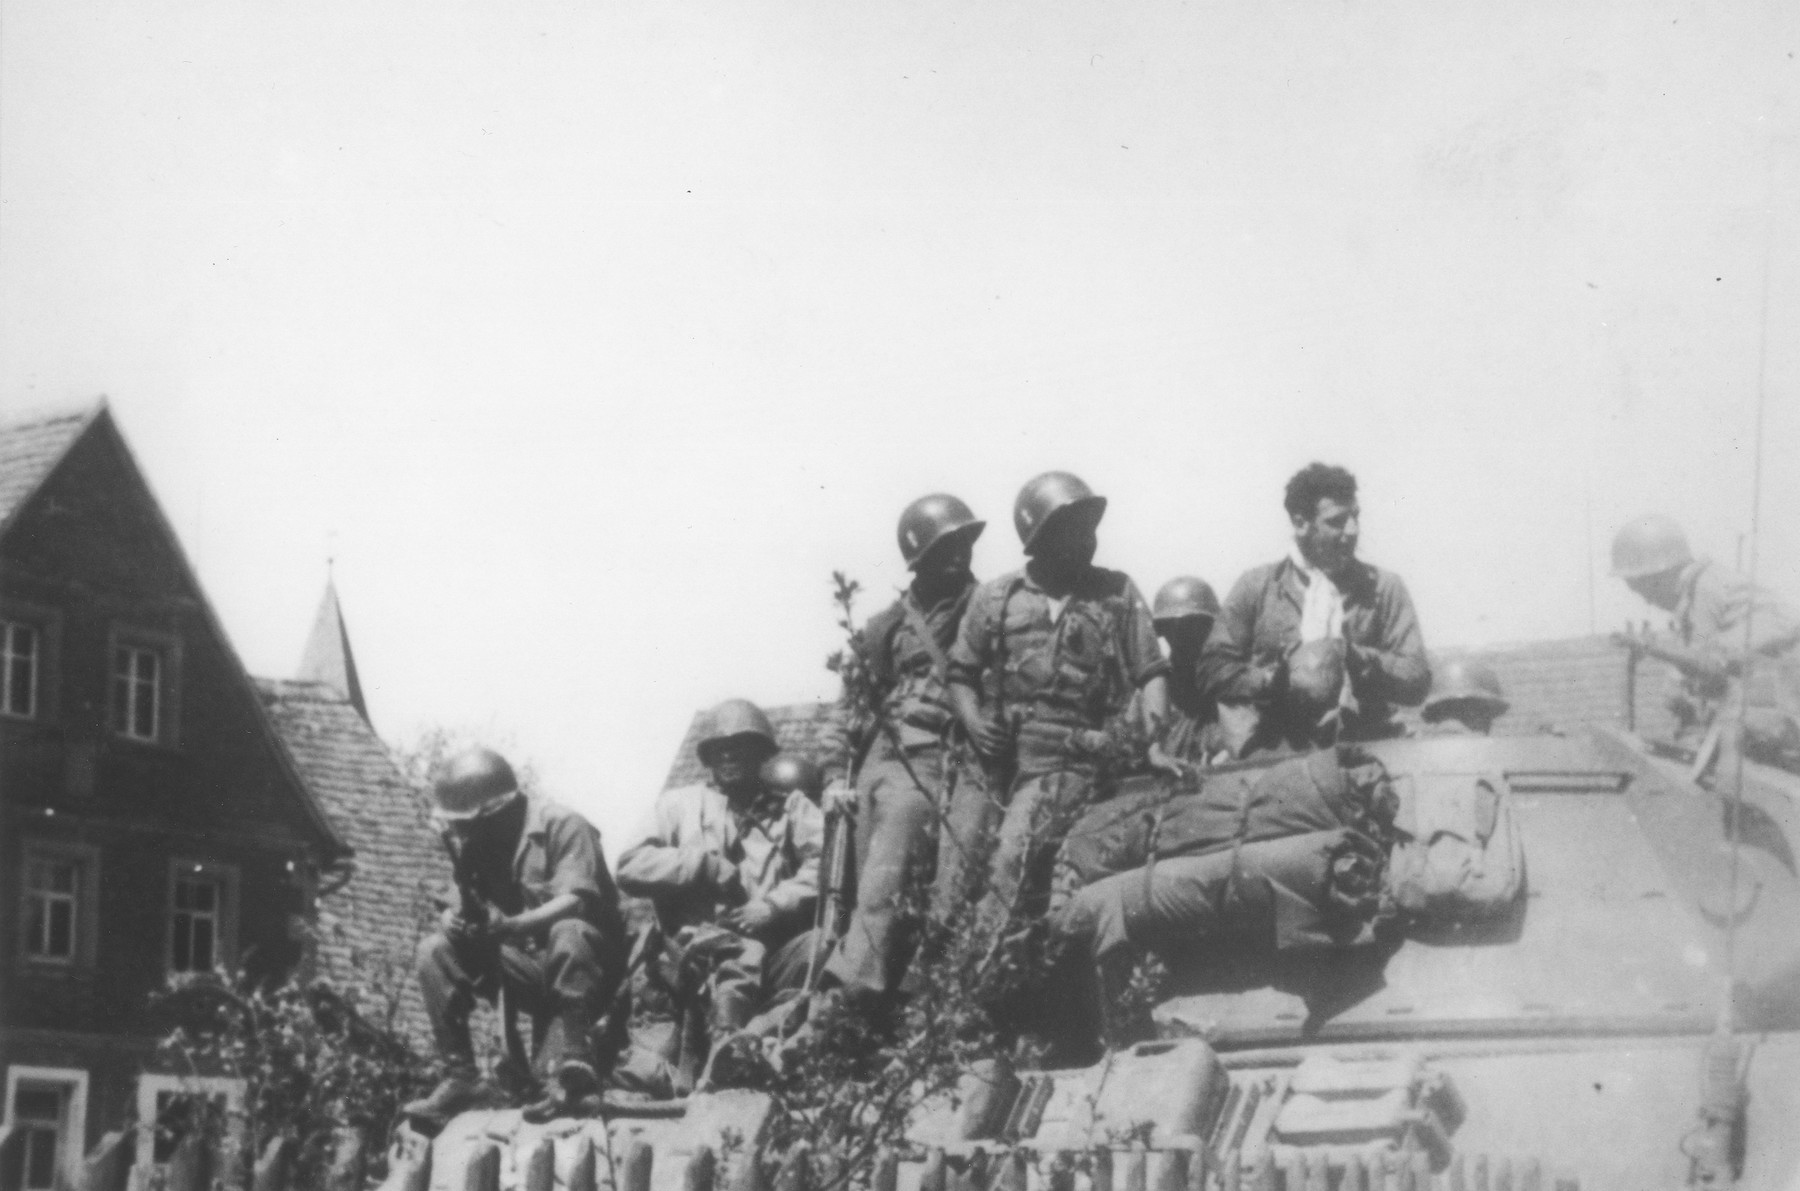 Japanese-American soldiers with the 522nd Field Artillery Battalion catch a ride on a tank destroyer near Dachau.